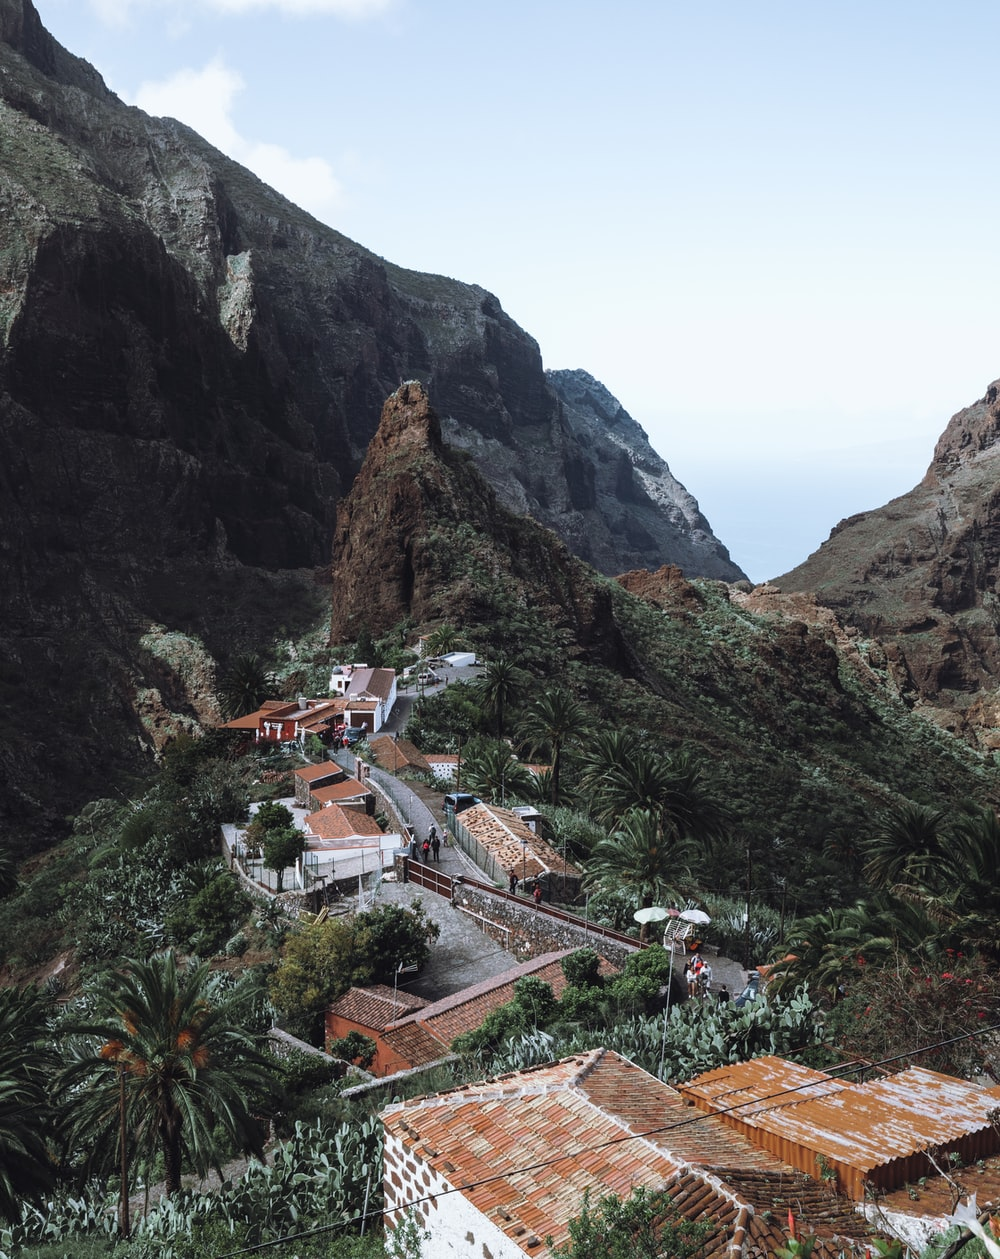 houses near mountain during daytime